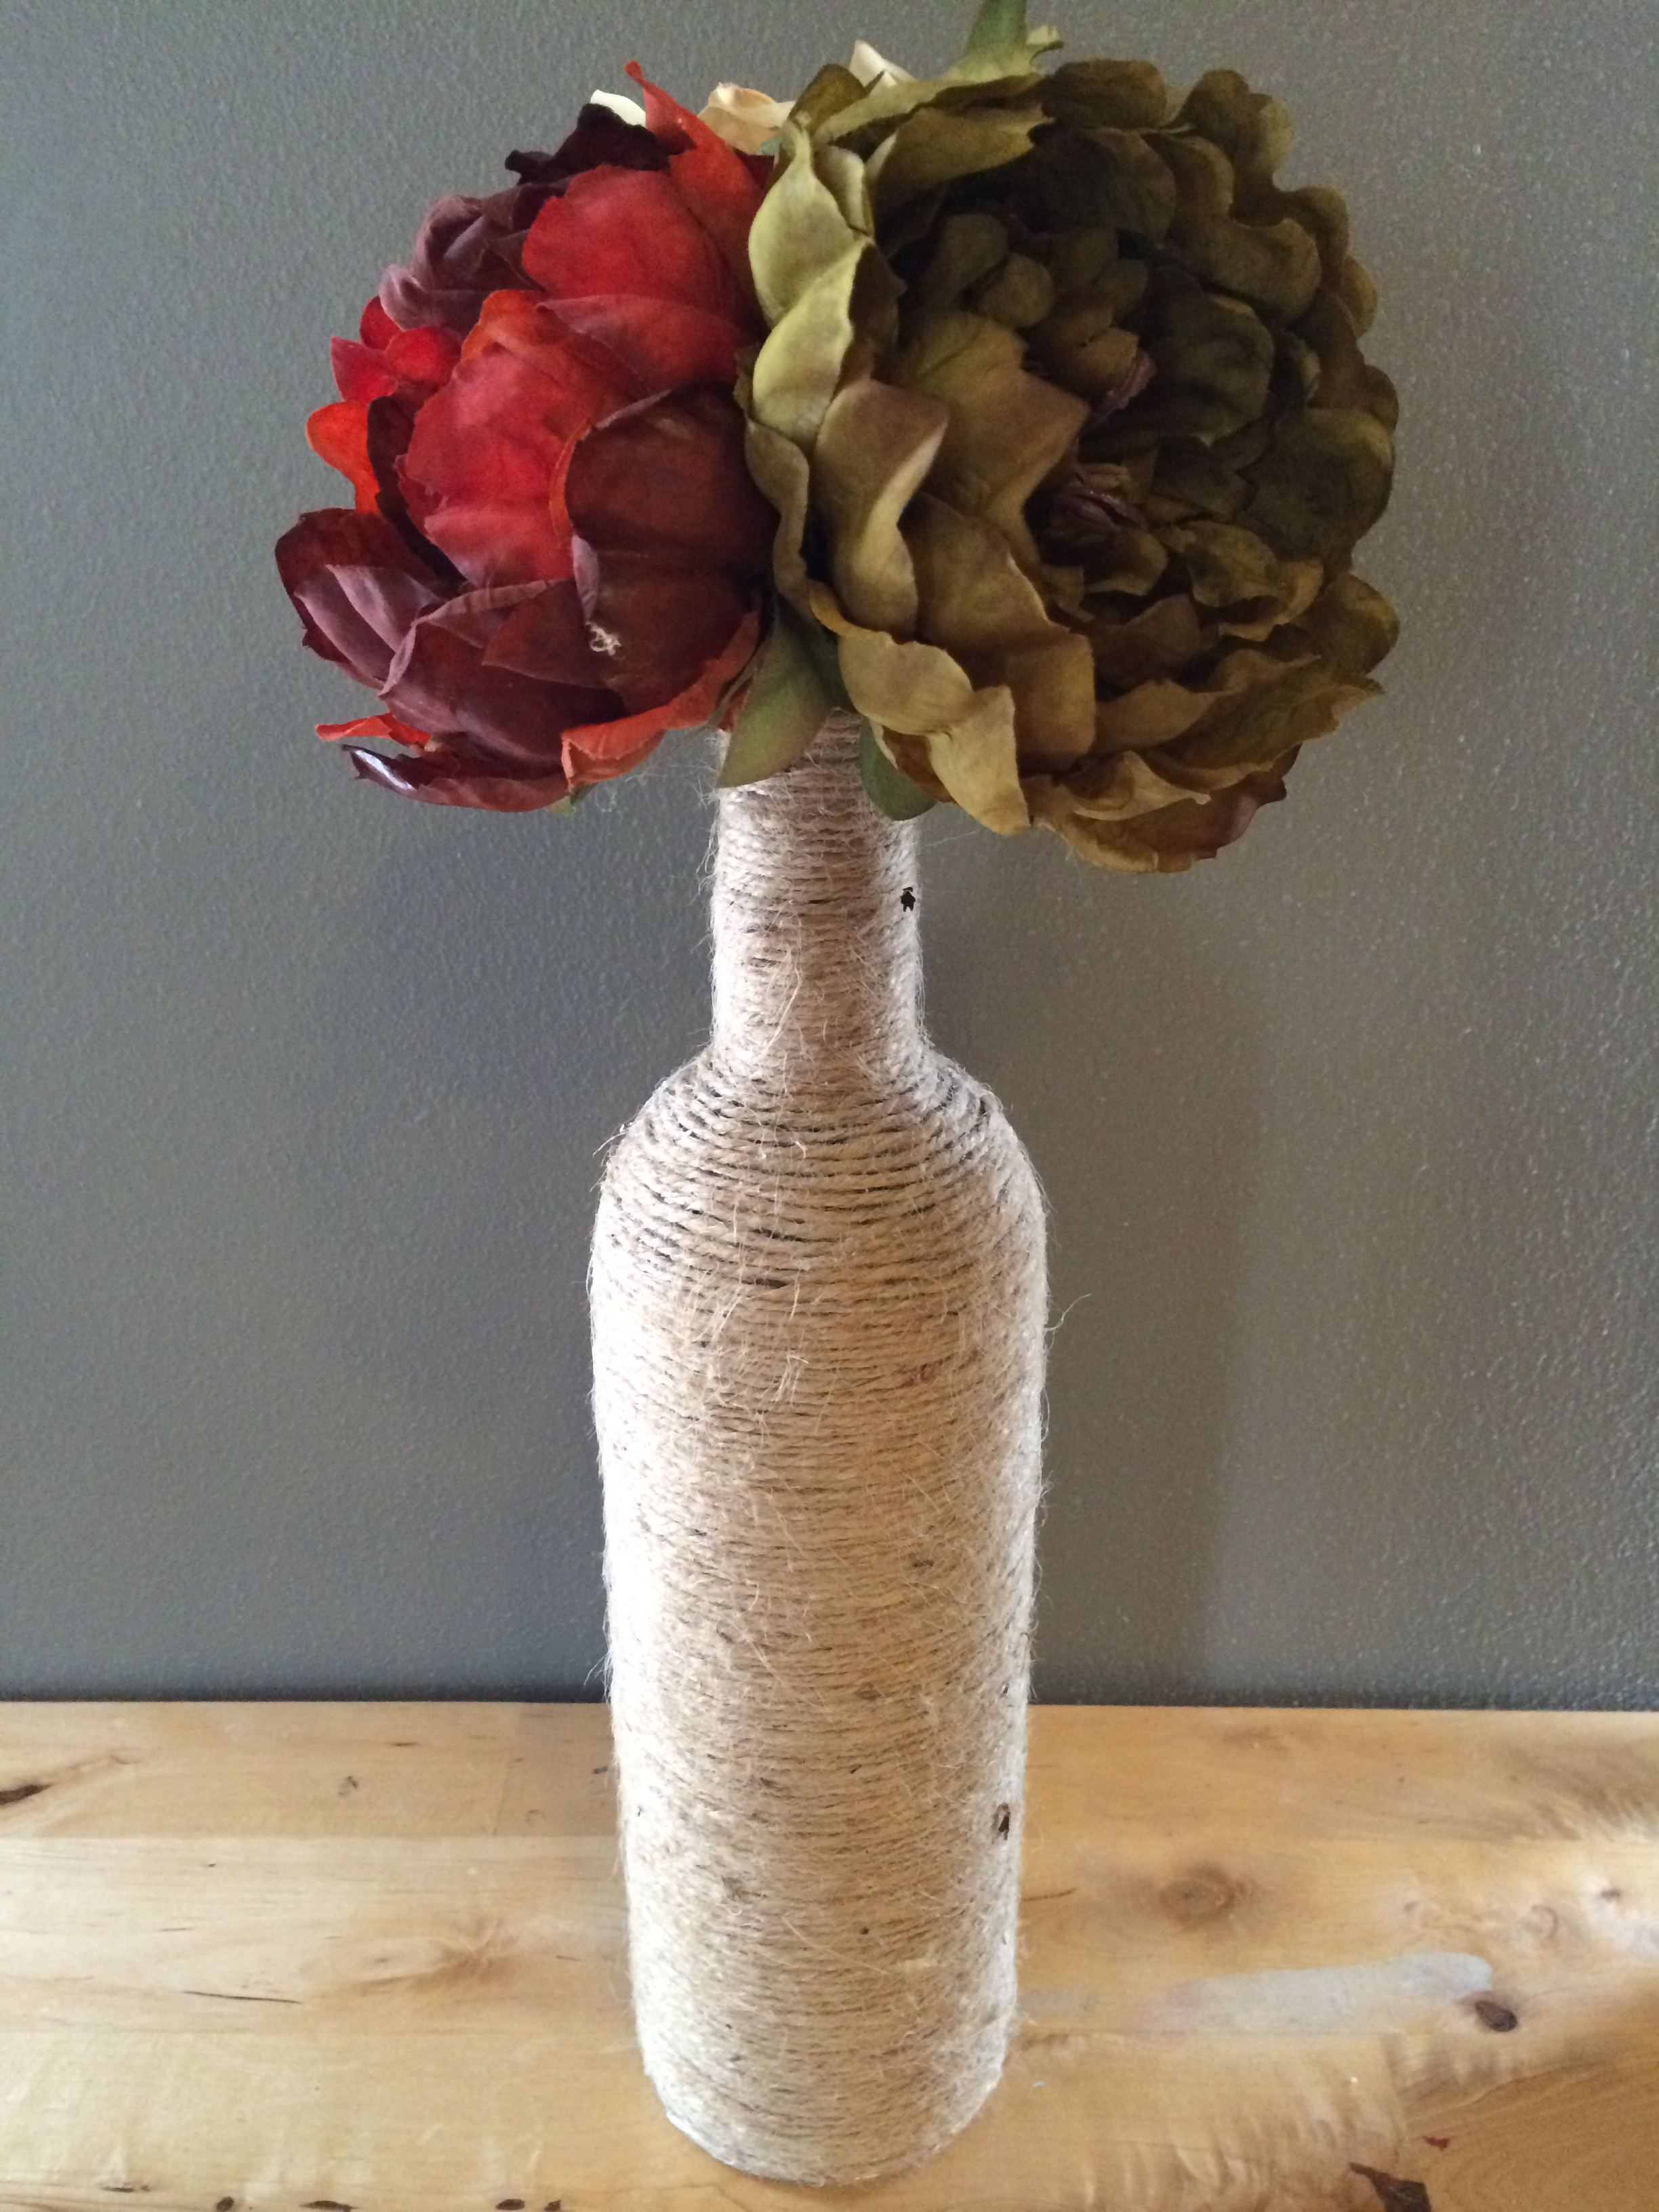 Items similar to Twine Wrapped Wine Bottle on Etsy |Twine Covered Wine Bottles